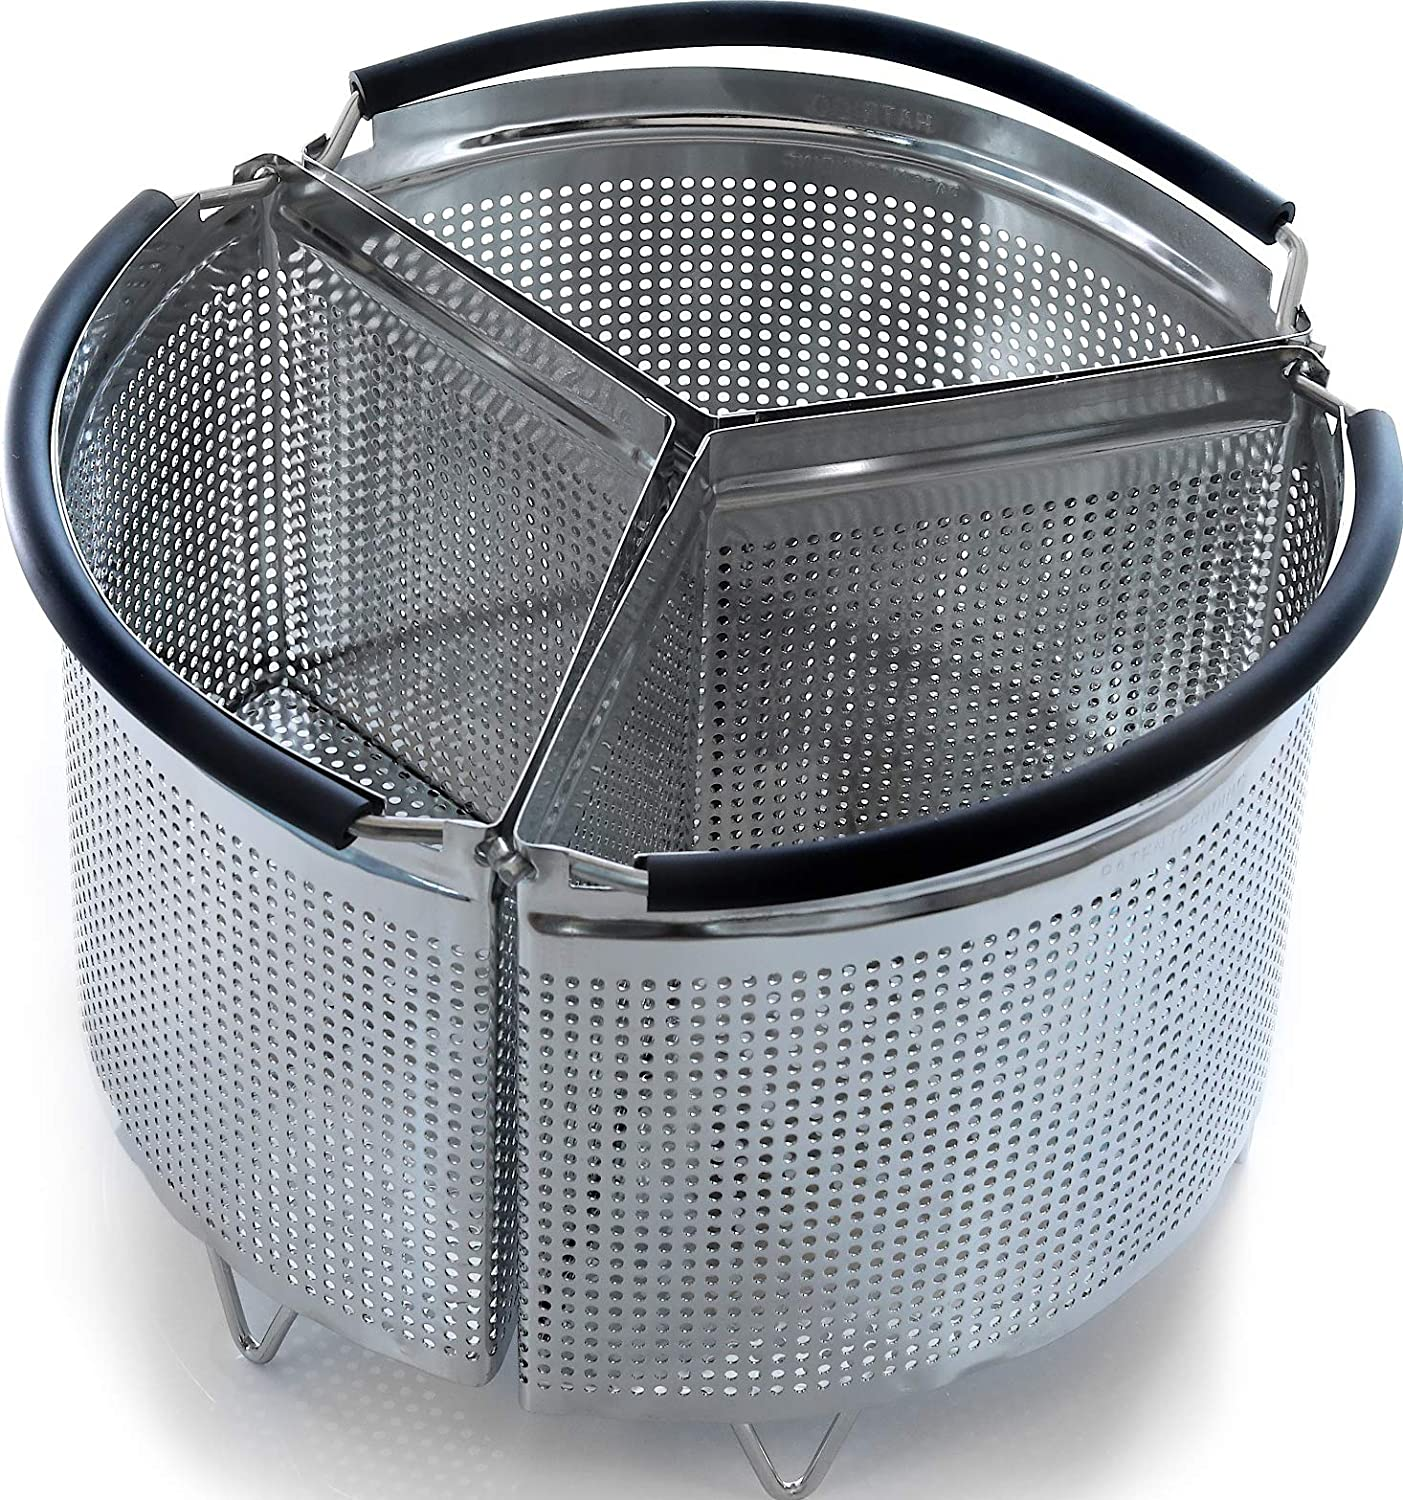 3-Piece Divided Steamer Basket for Instant Pot Accessories 6qt [3qt 8qt avail] fits InstaPot, Ninja Foodi, Other Pressure Cookers, Strainer Insert for Insta Pot Ultra, Cook 3-in-1, for Instant Pot 6Qt